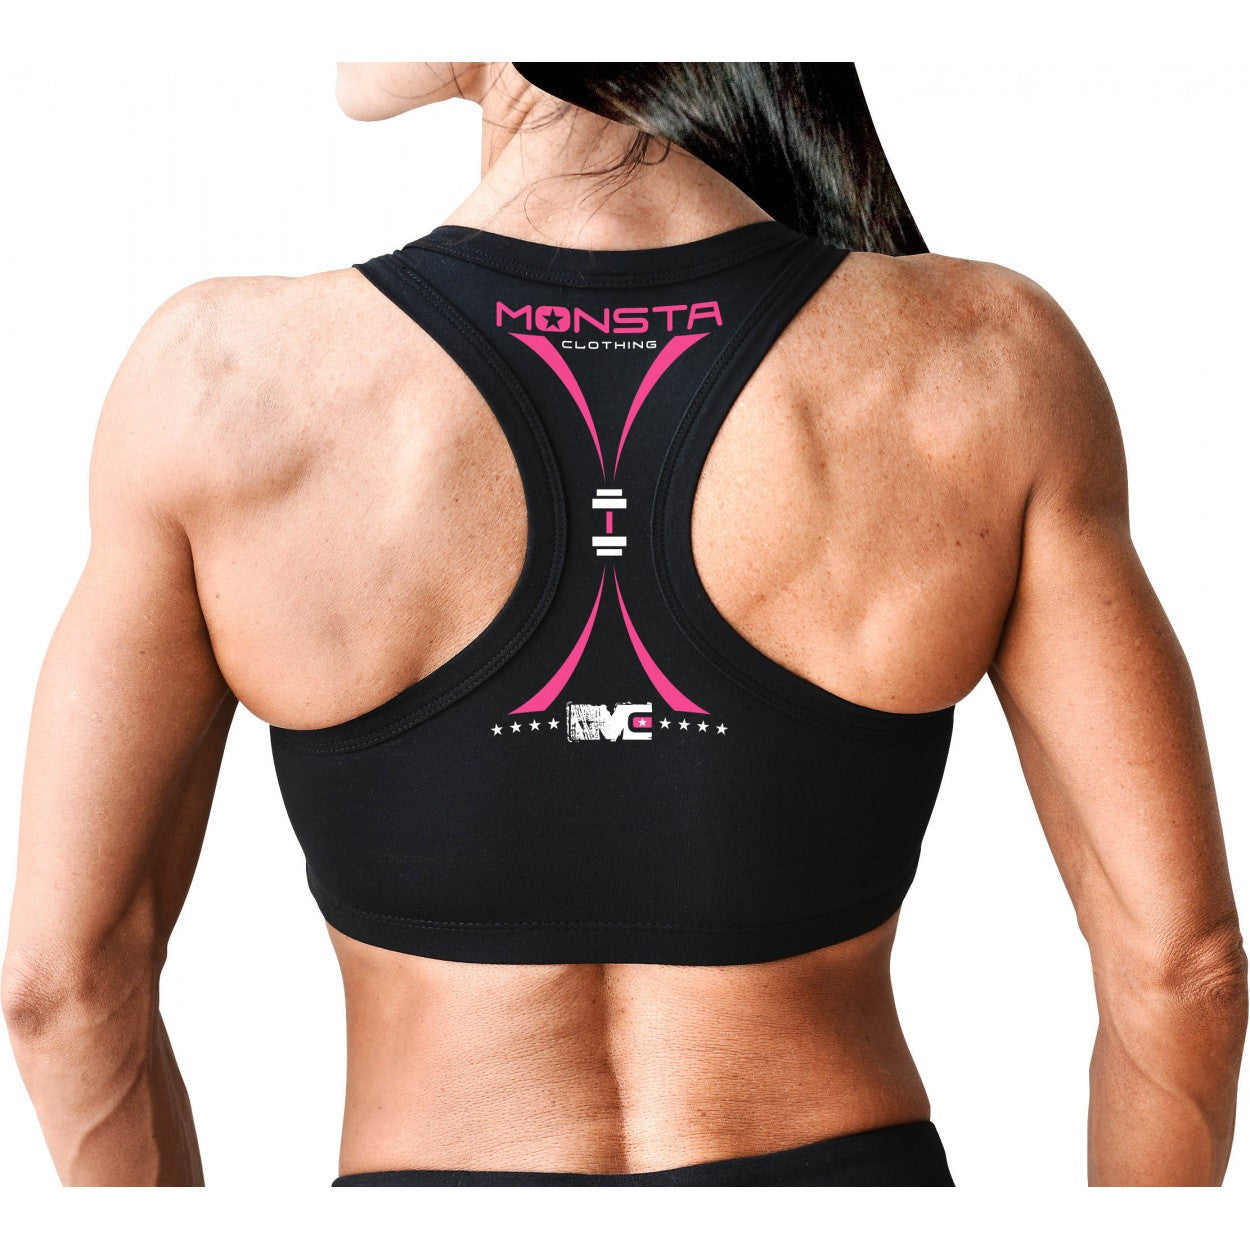 Sports Bra: Train Beast - Monsta Clothing Australia